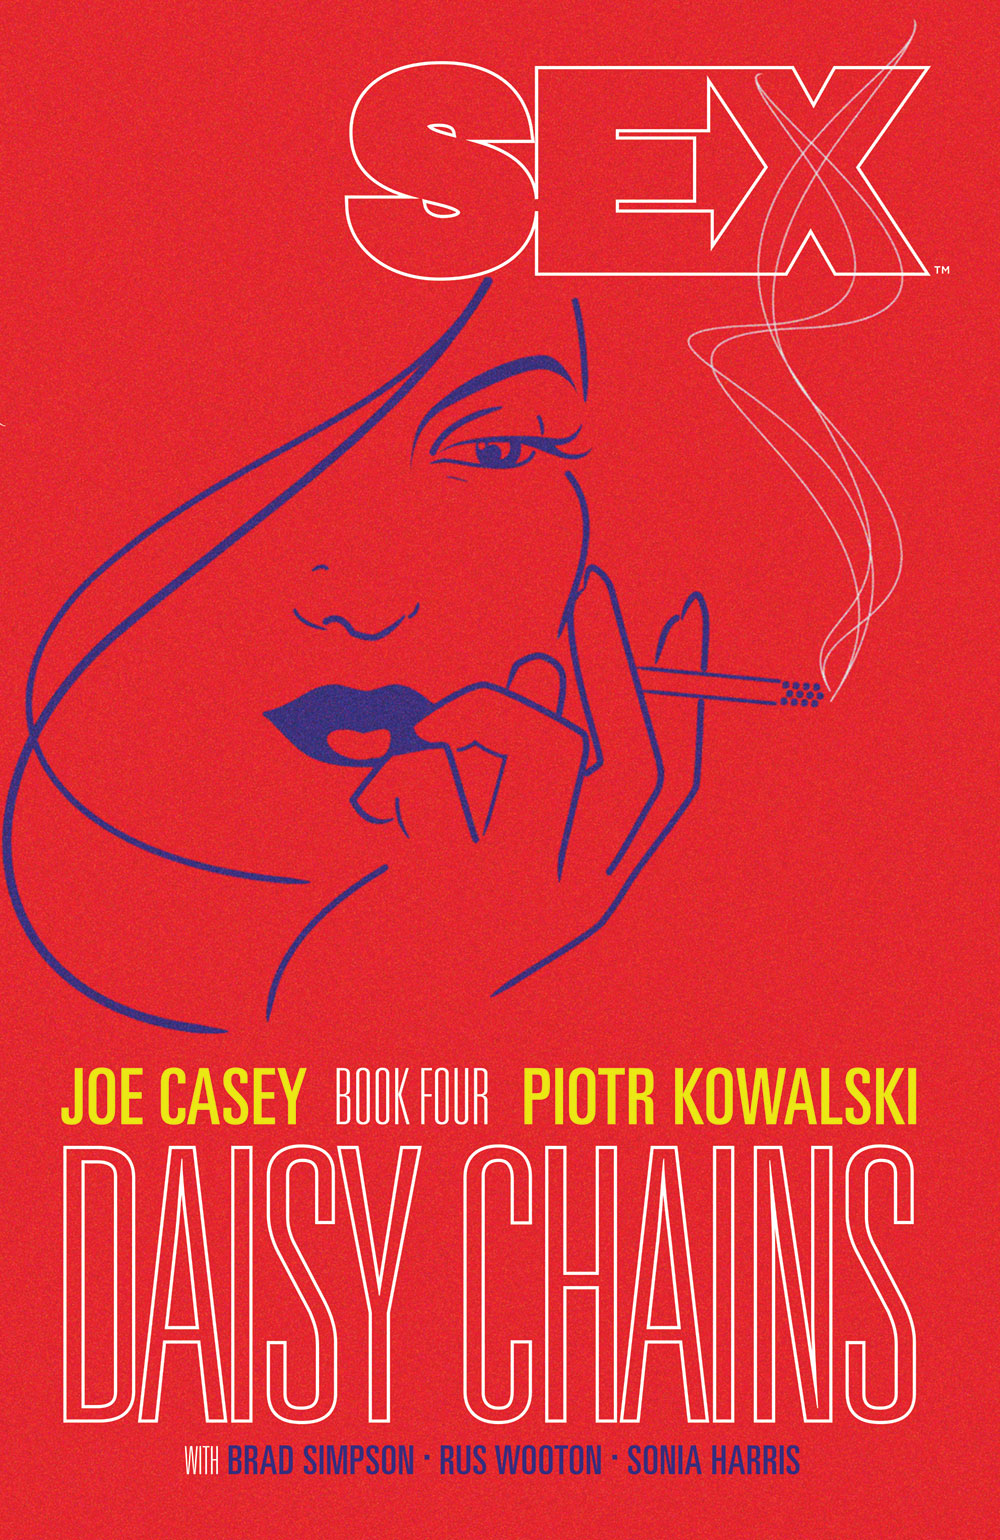 Book & Logo: Sex - Book 4, Daisy Chains